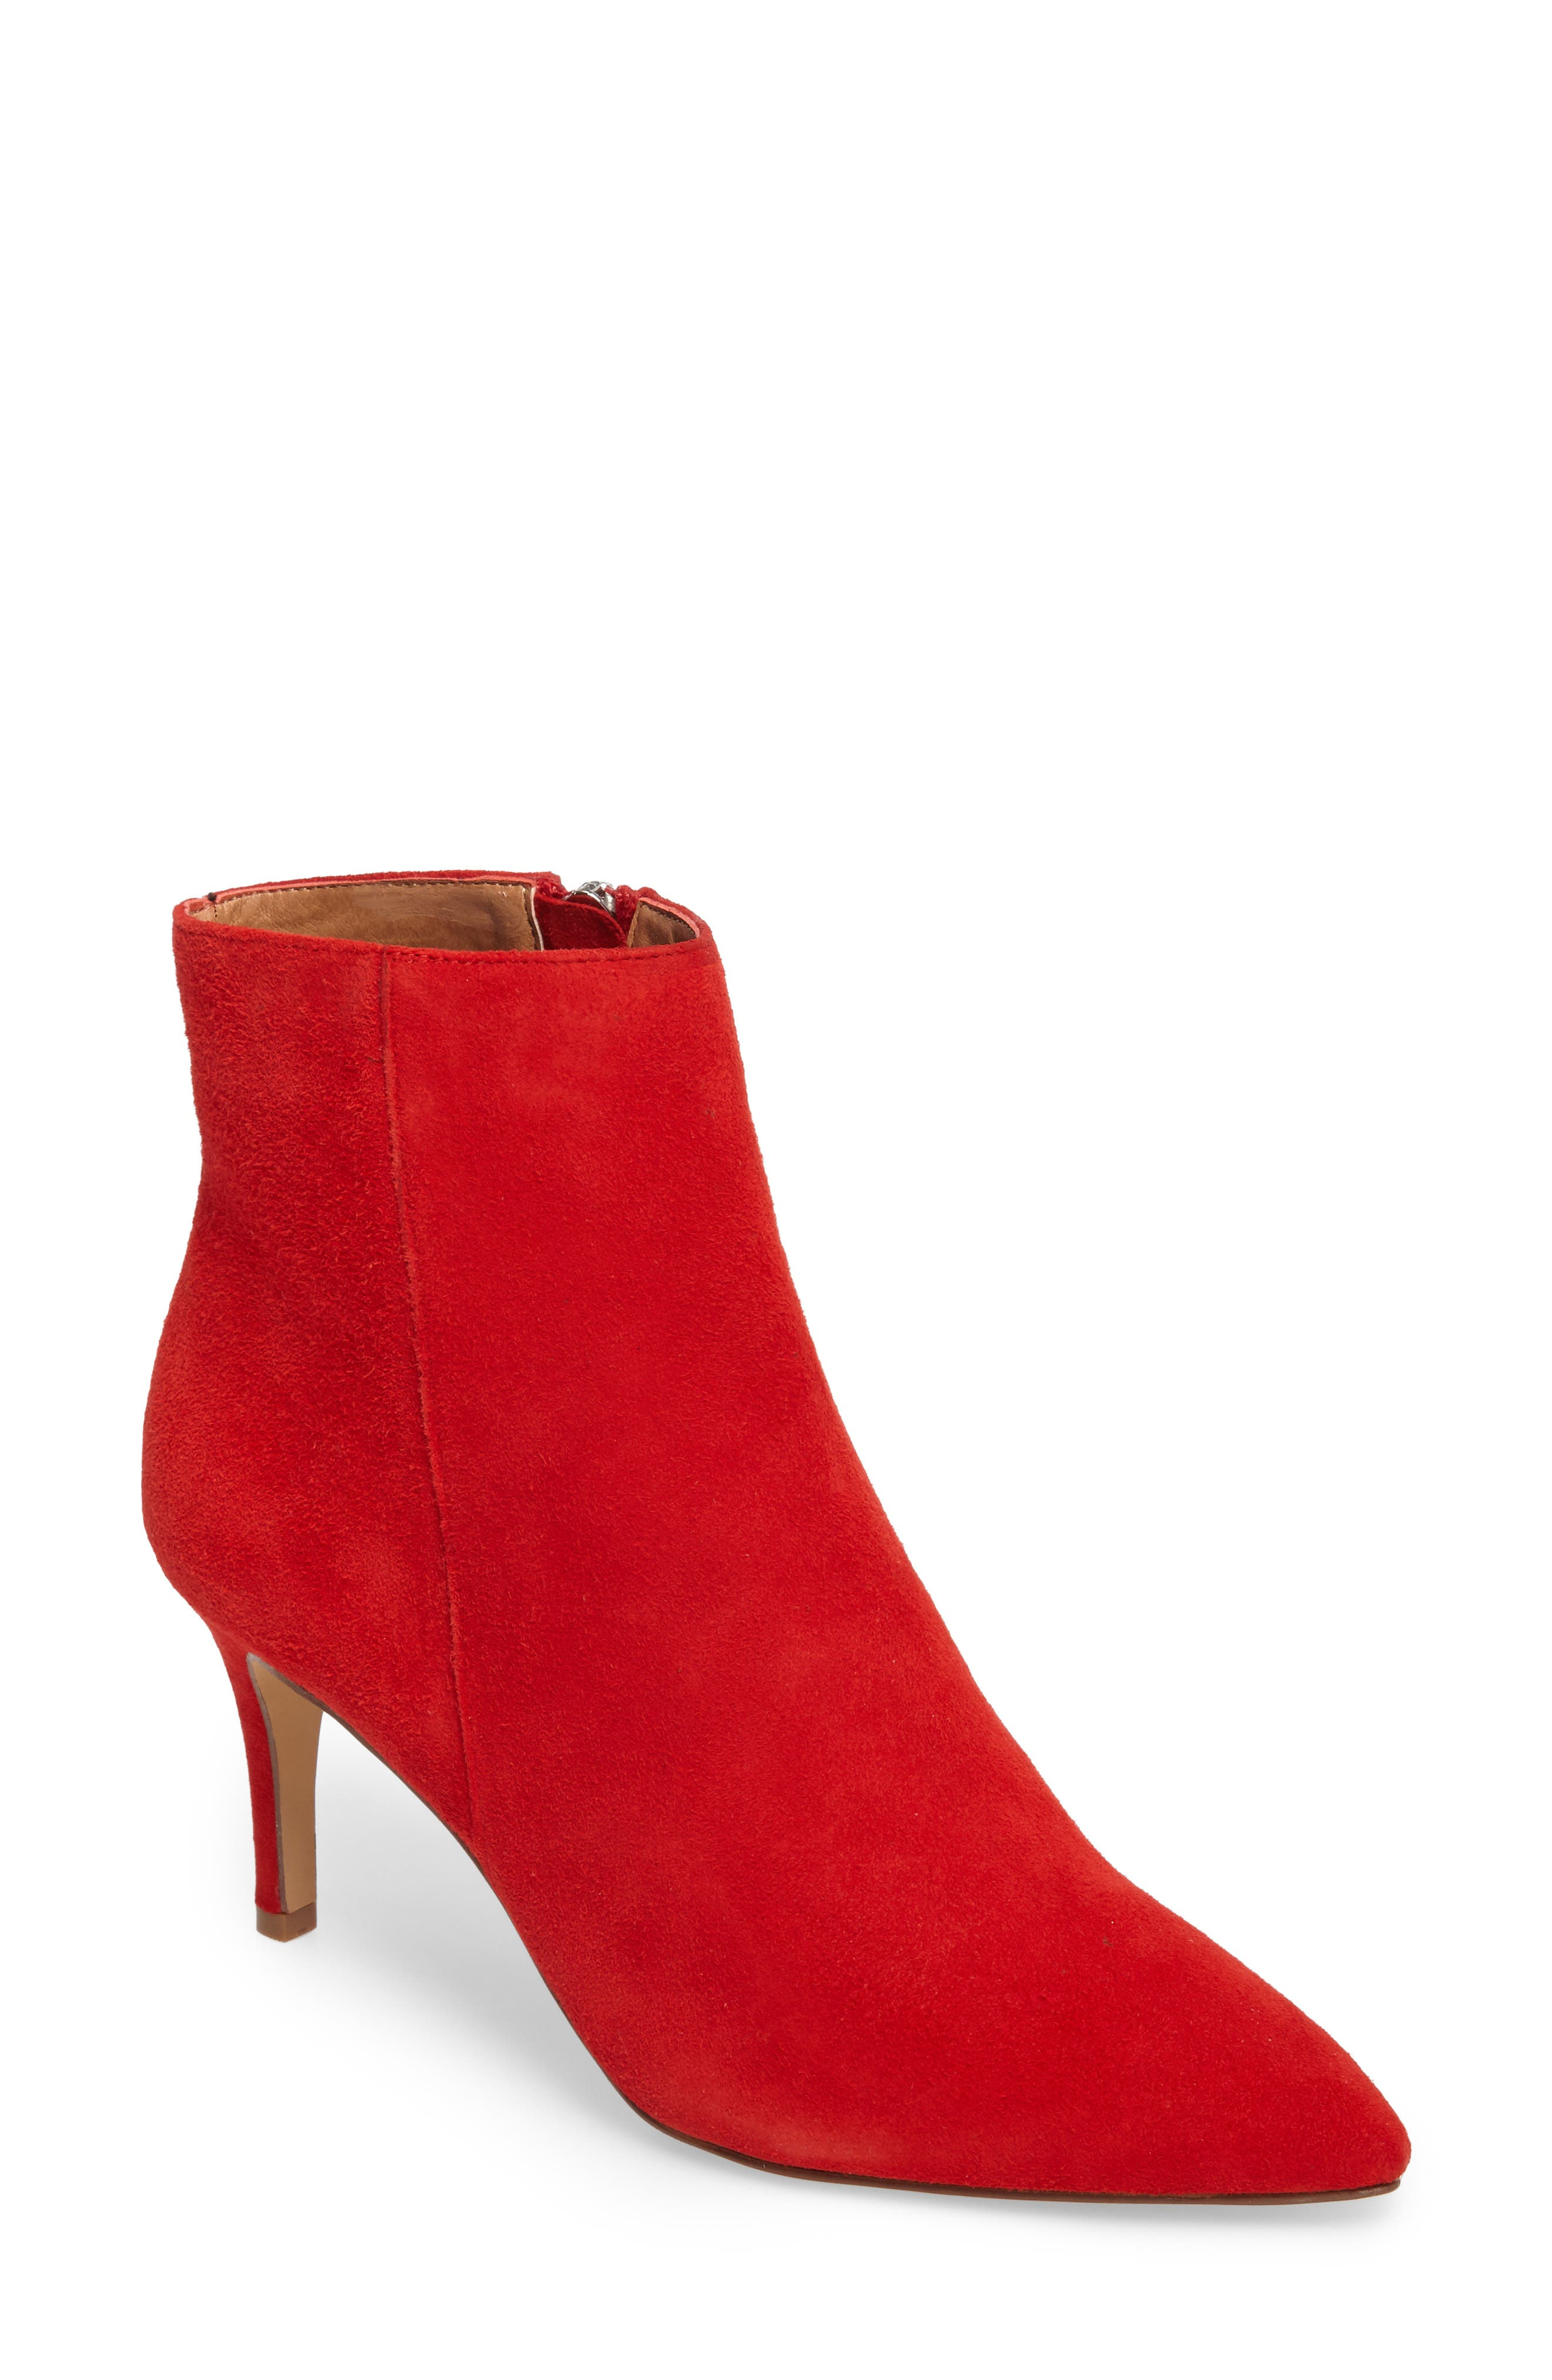 New Lyst - Gianvito Rossi Womens Suede Ankleflare Bootie Red In Red